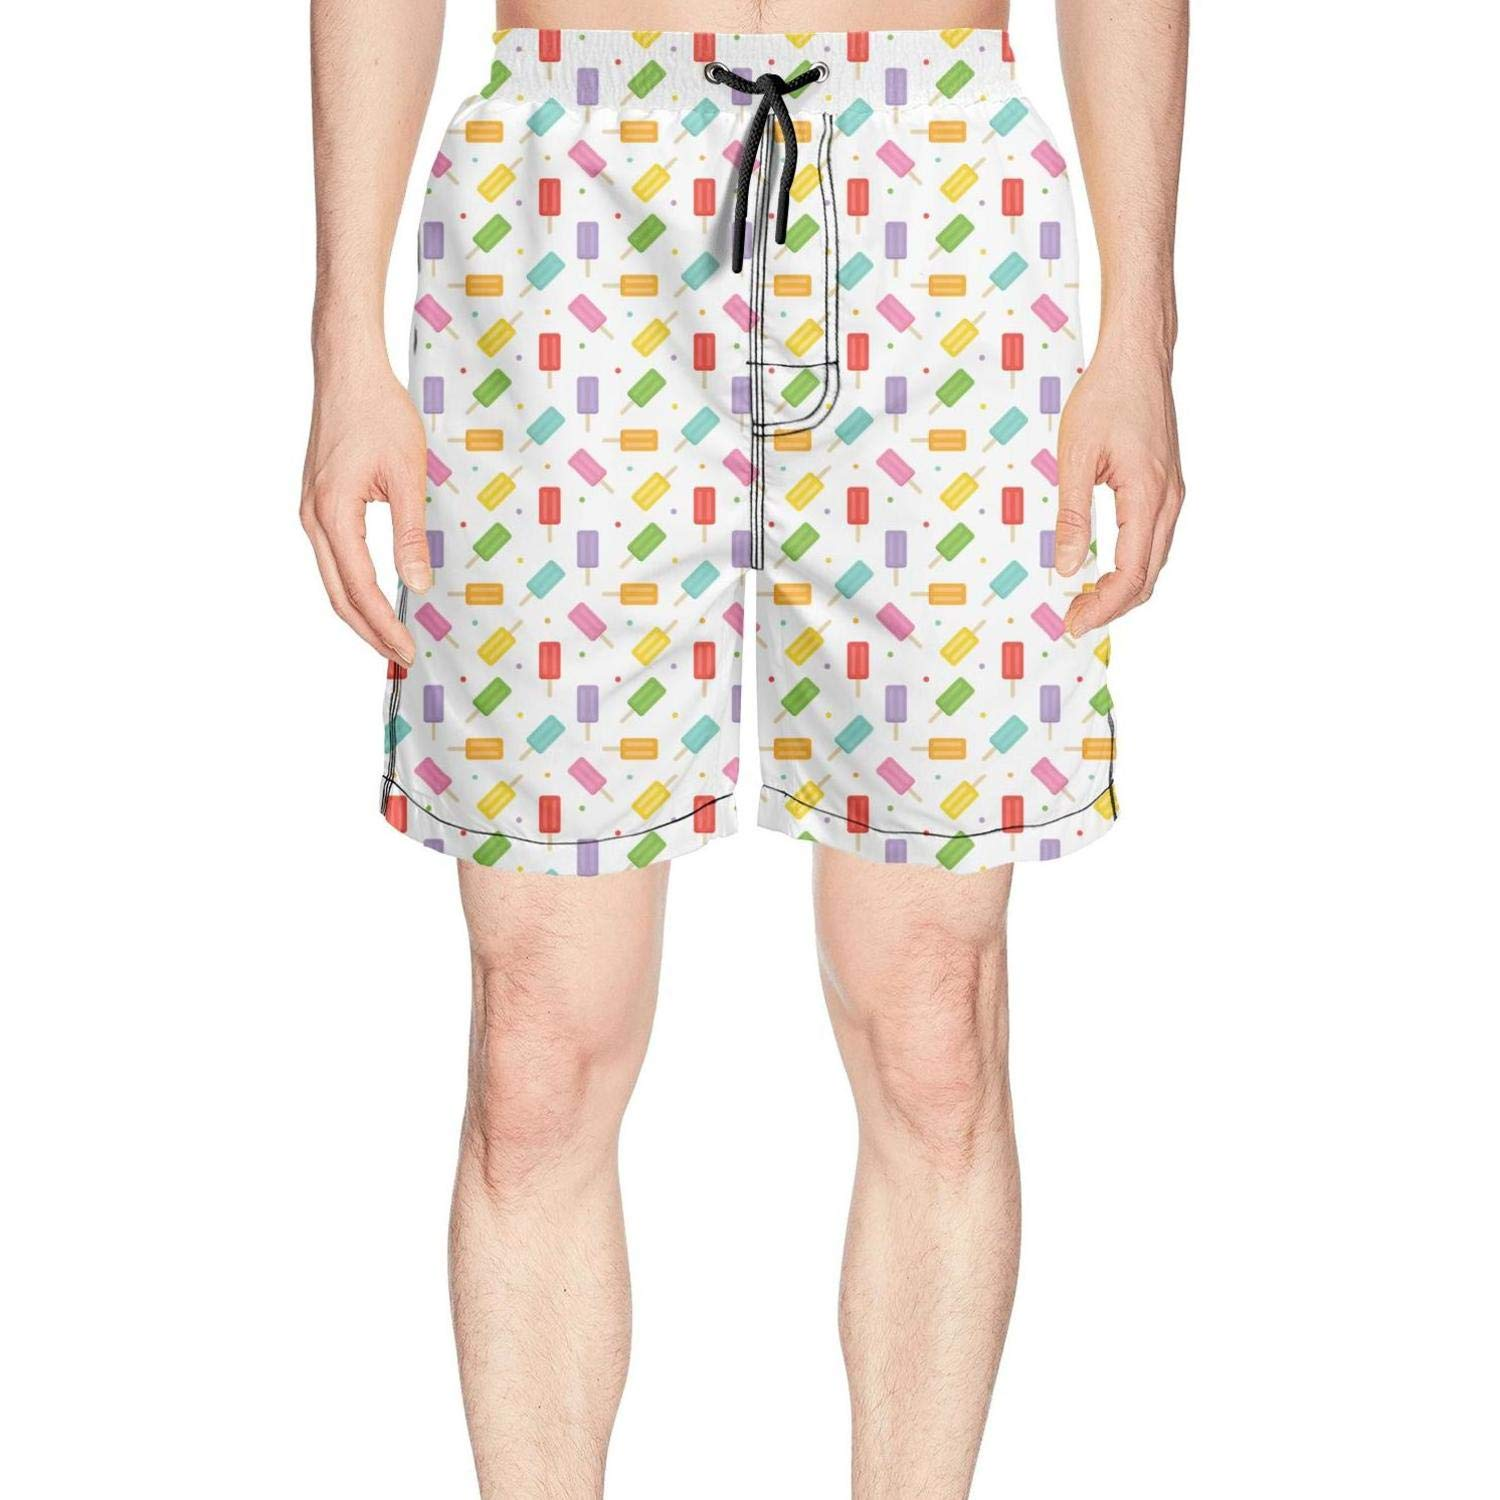 Men's Colorful Ice Cream and Dots Summer Quick Dry Volley Beach Shorts Fashion Swim Trunks